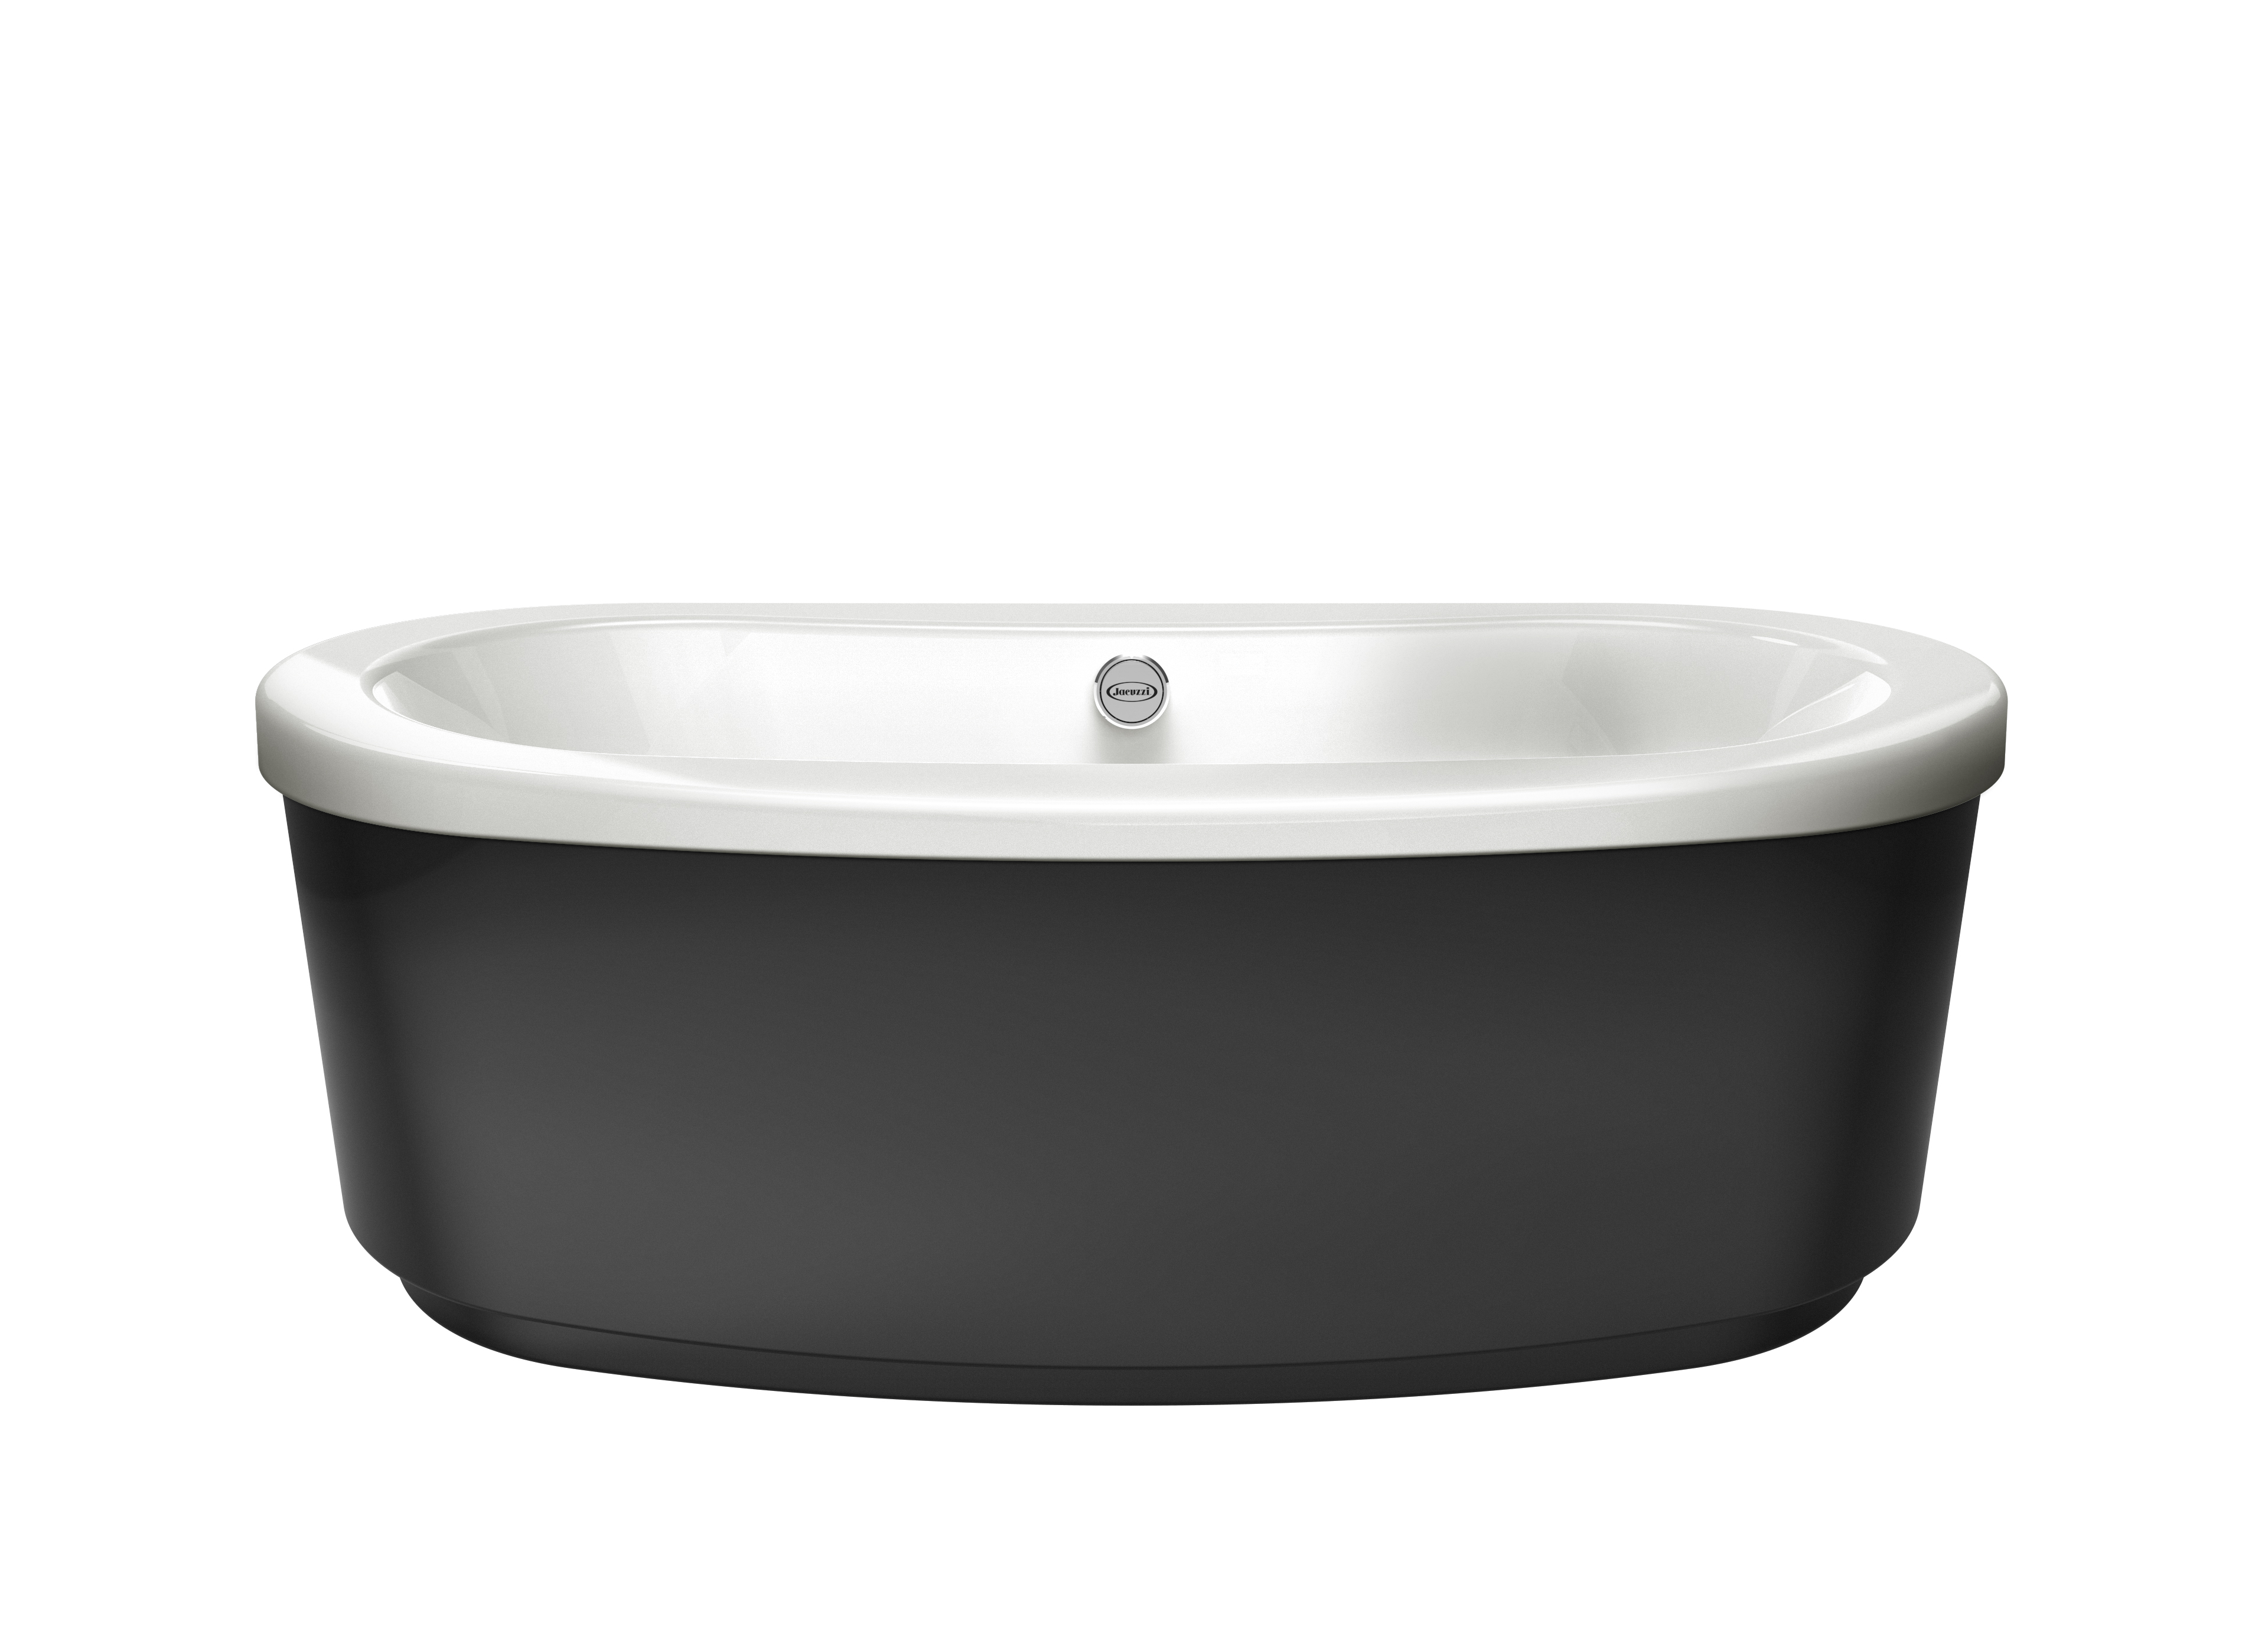 Modena Freestanding Whirlpool Tub For Residential Pro